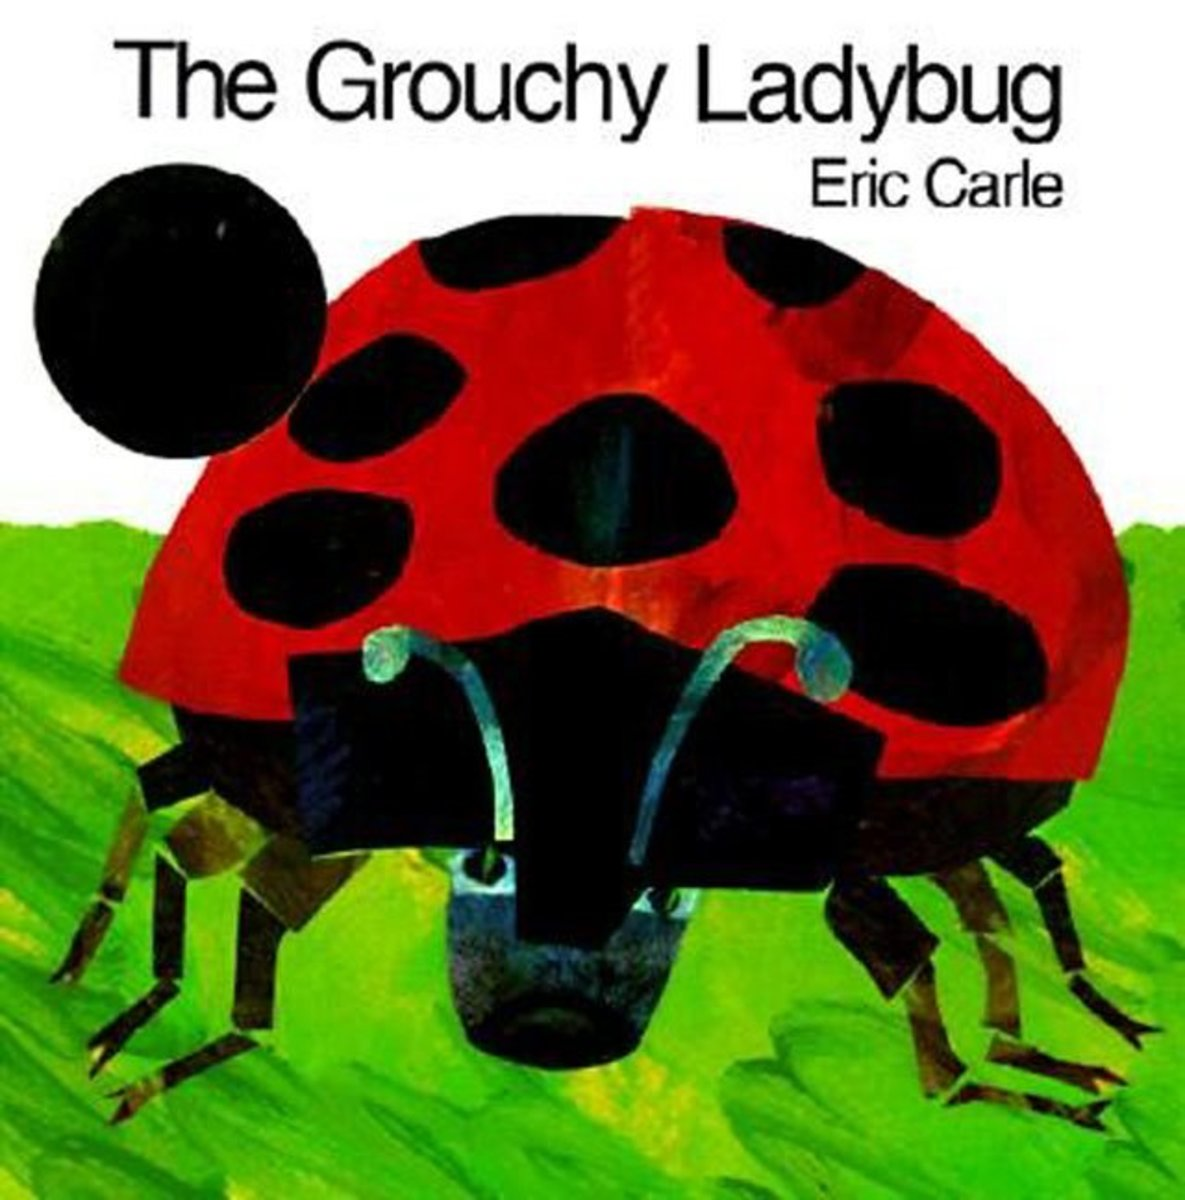 The Grouchy Ladybug by Eric Carle Children's Book Review and